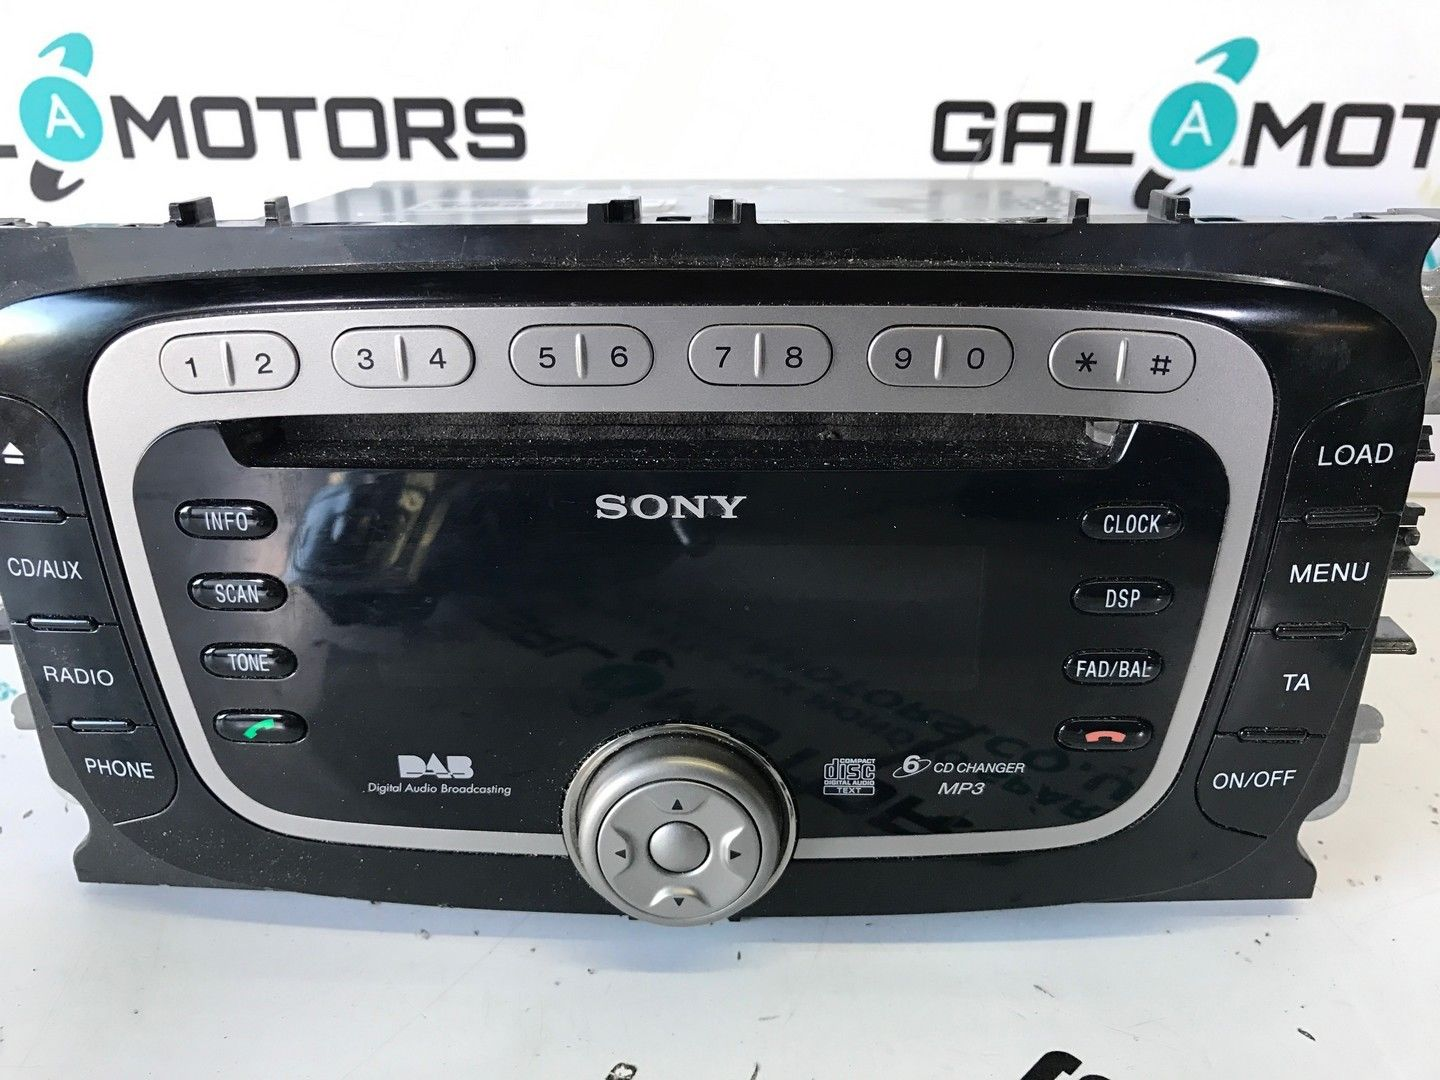 ford galaxy mk3 s max mondeo mk4 2007 2010 dab radio sony. Black Bedroom Furniture Sets. Home Design Ideas